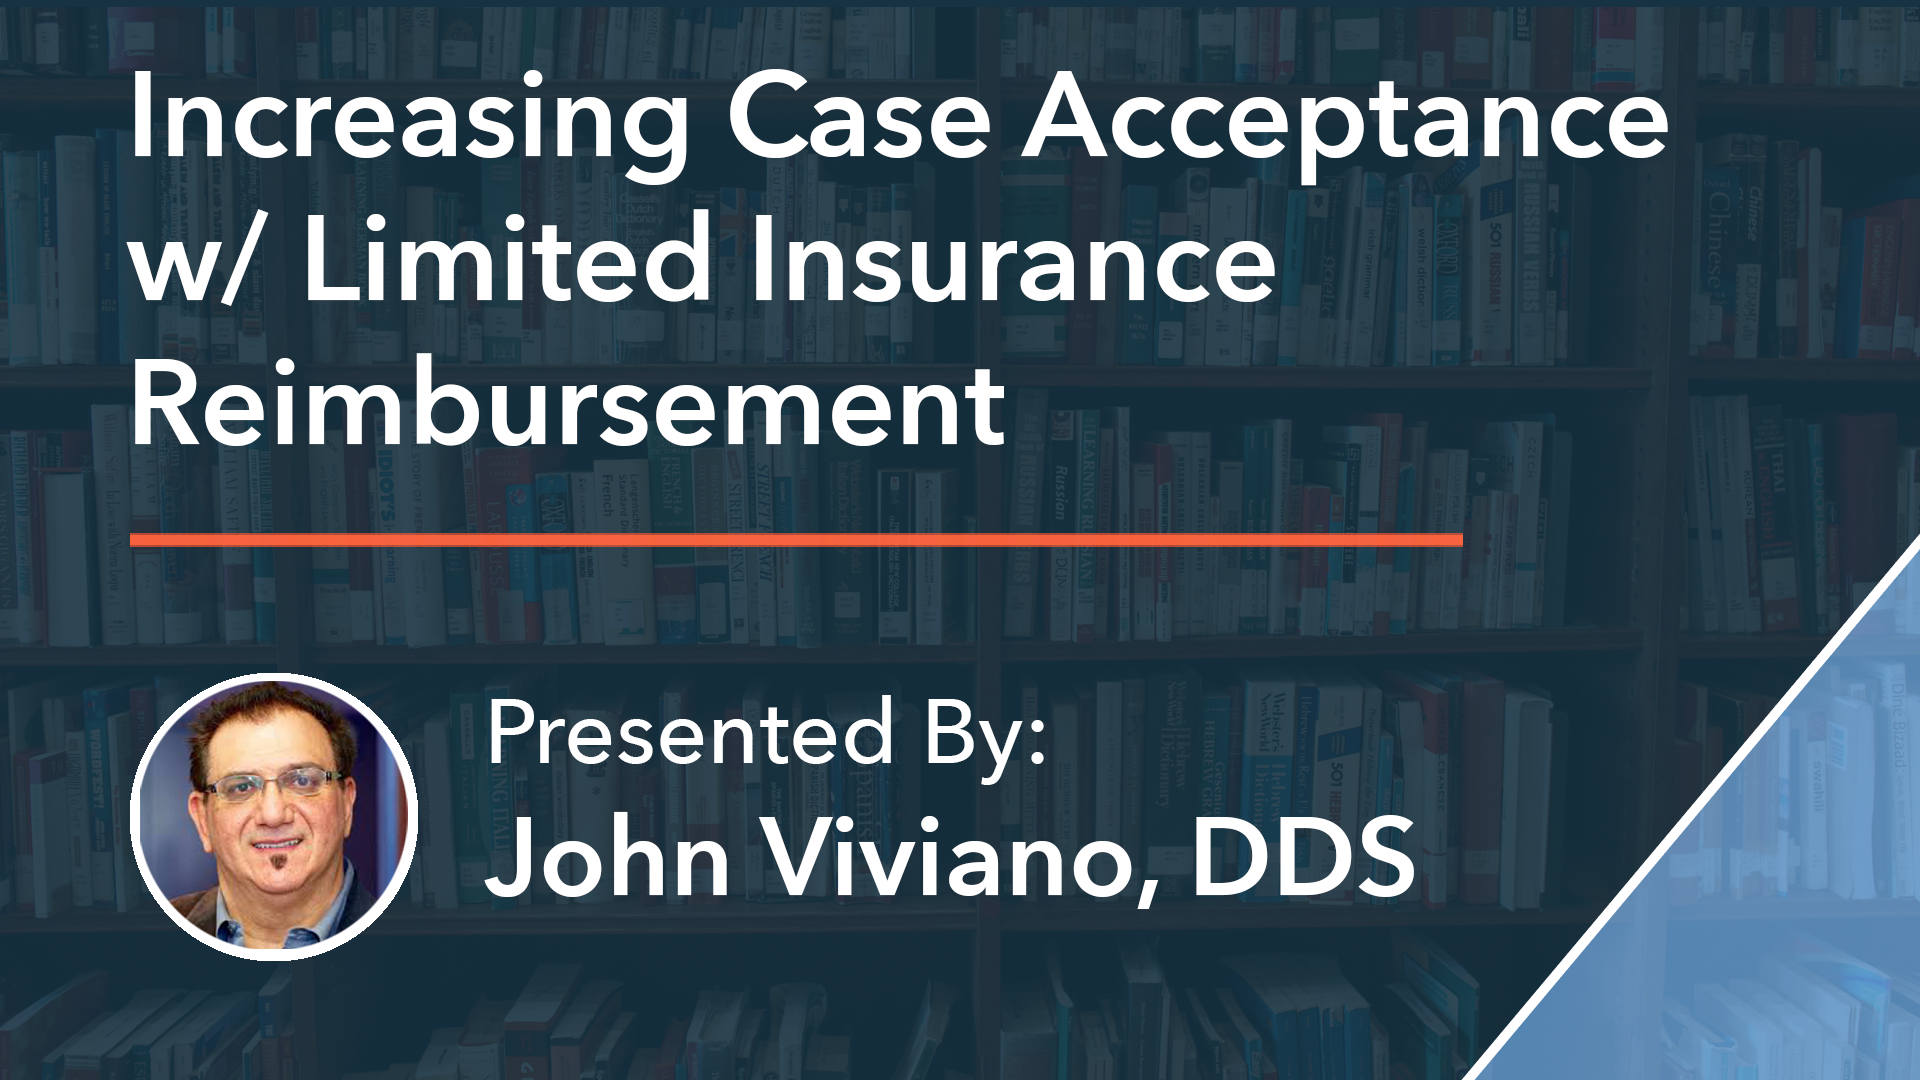 Increasing Case Acceptance with Limited Insurance Reimbursement by Dr John Viviano